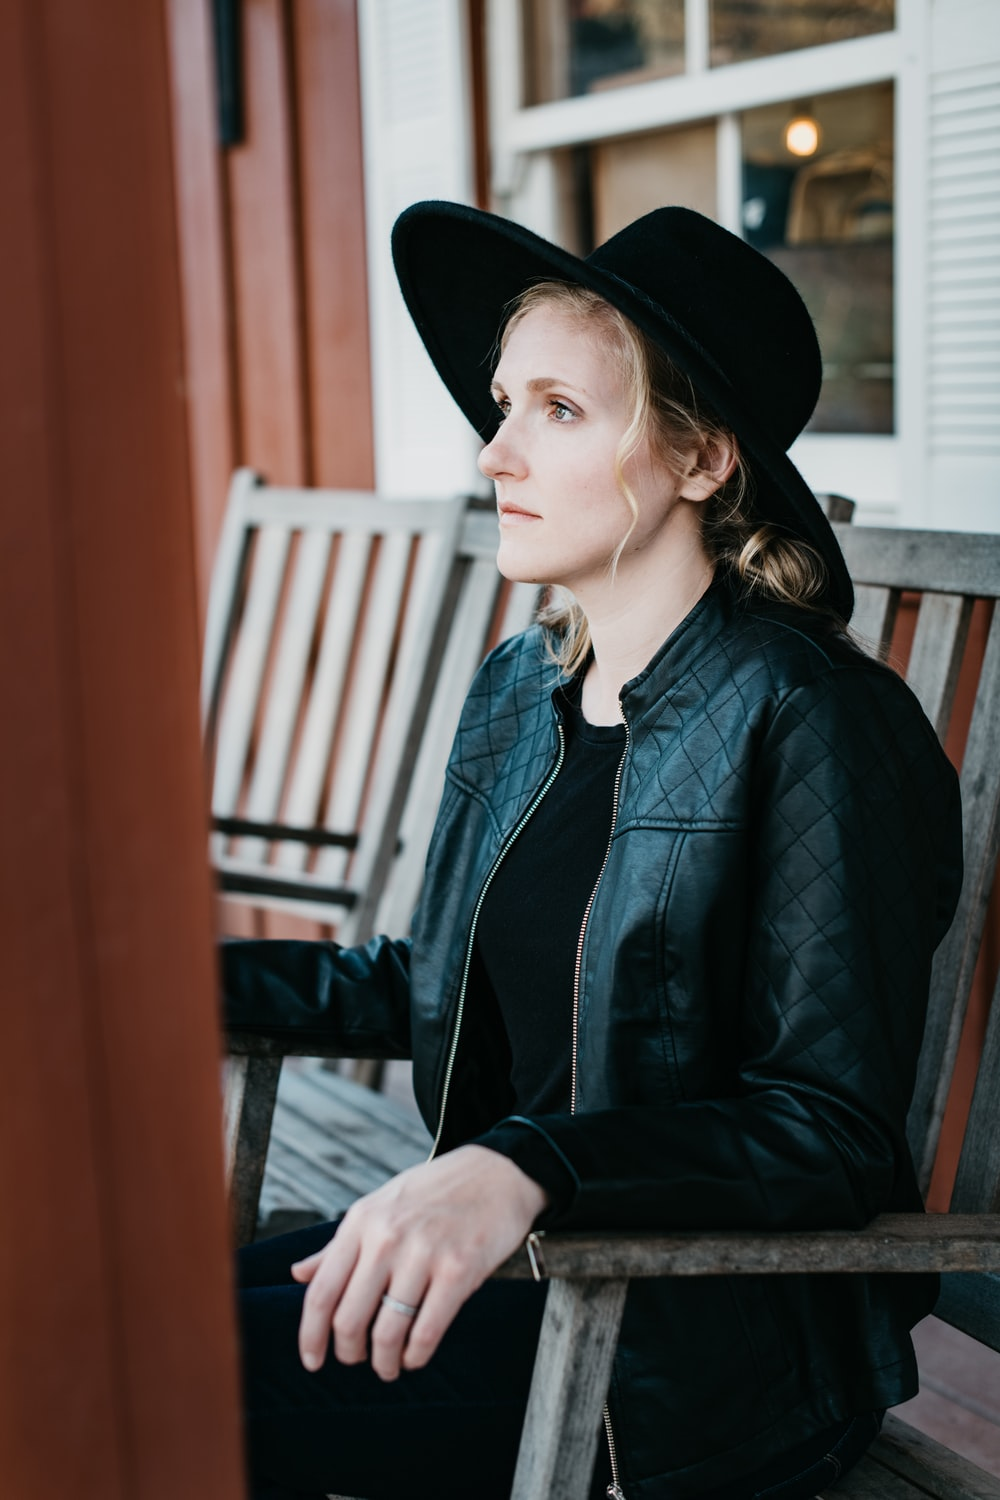 woman in black leather jacket and black hat sitting on brown wooden chair